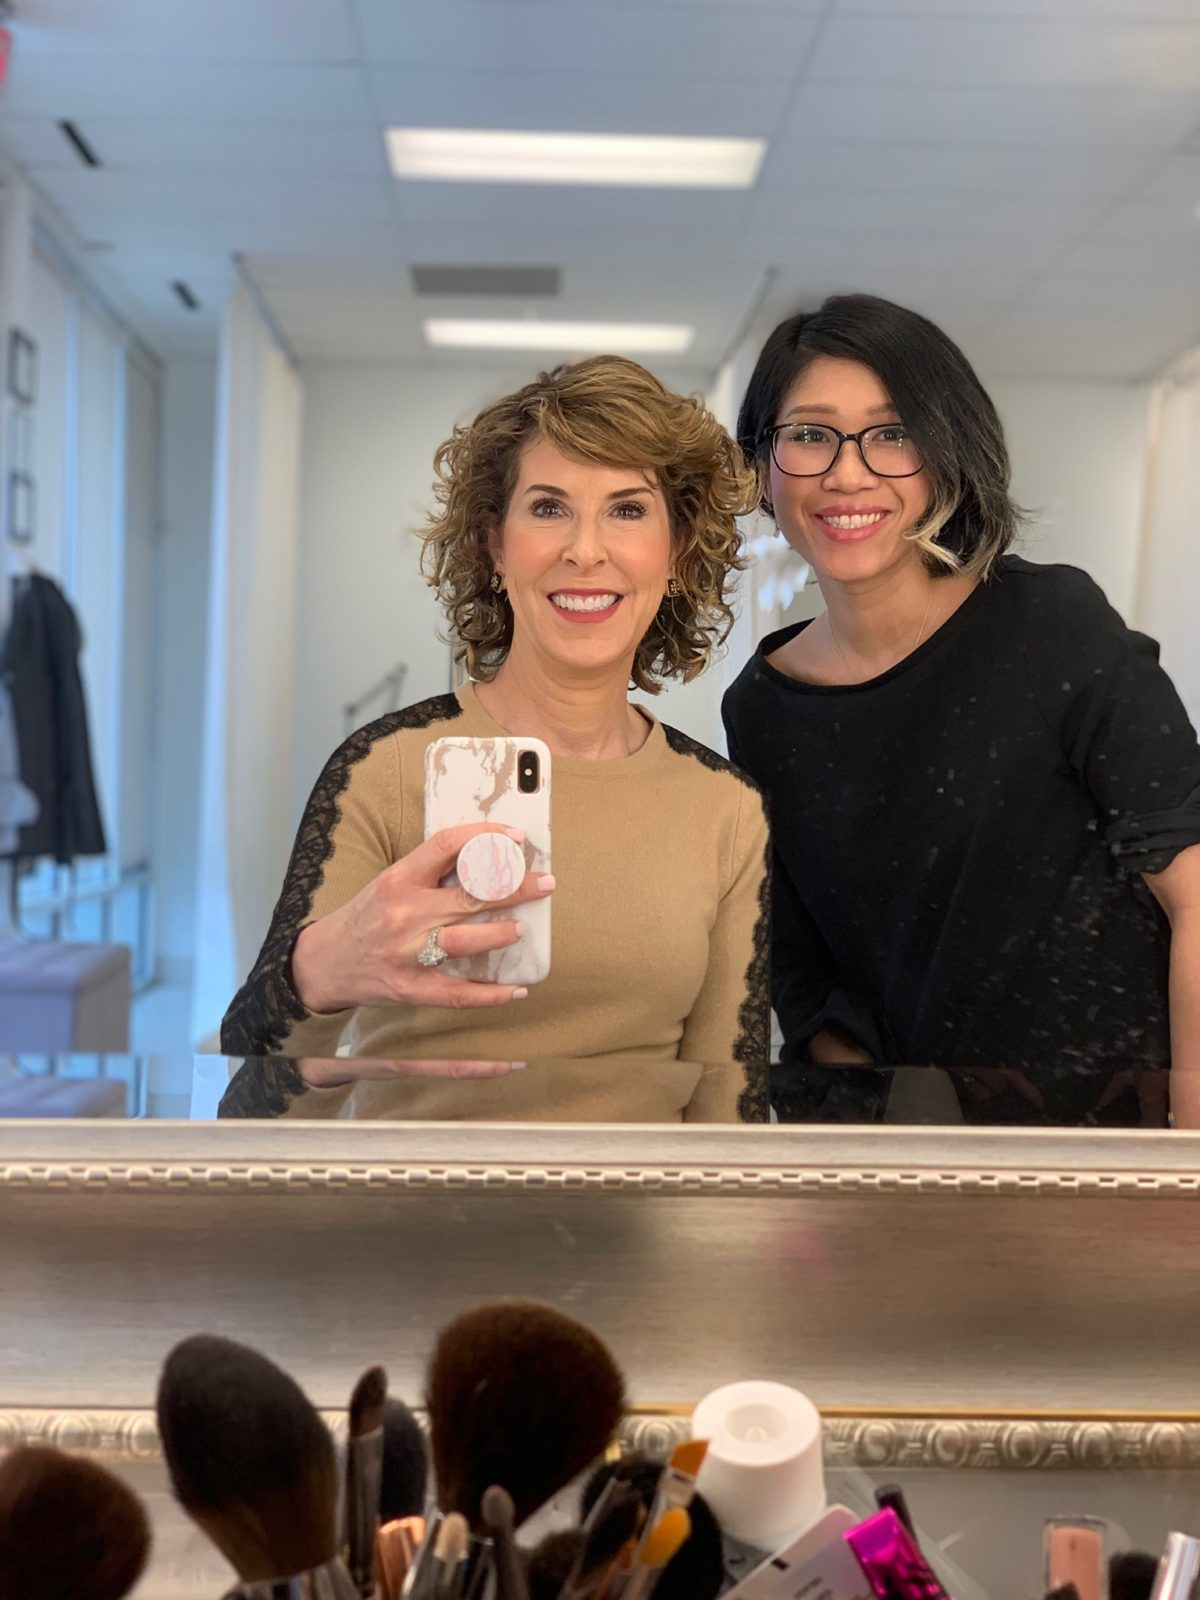 two women posing for selfie in mirror